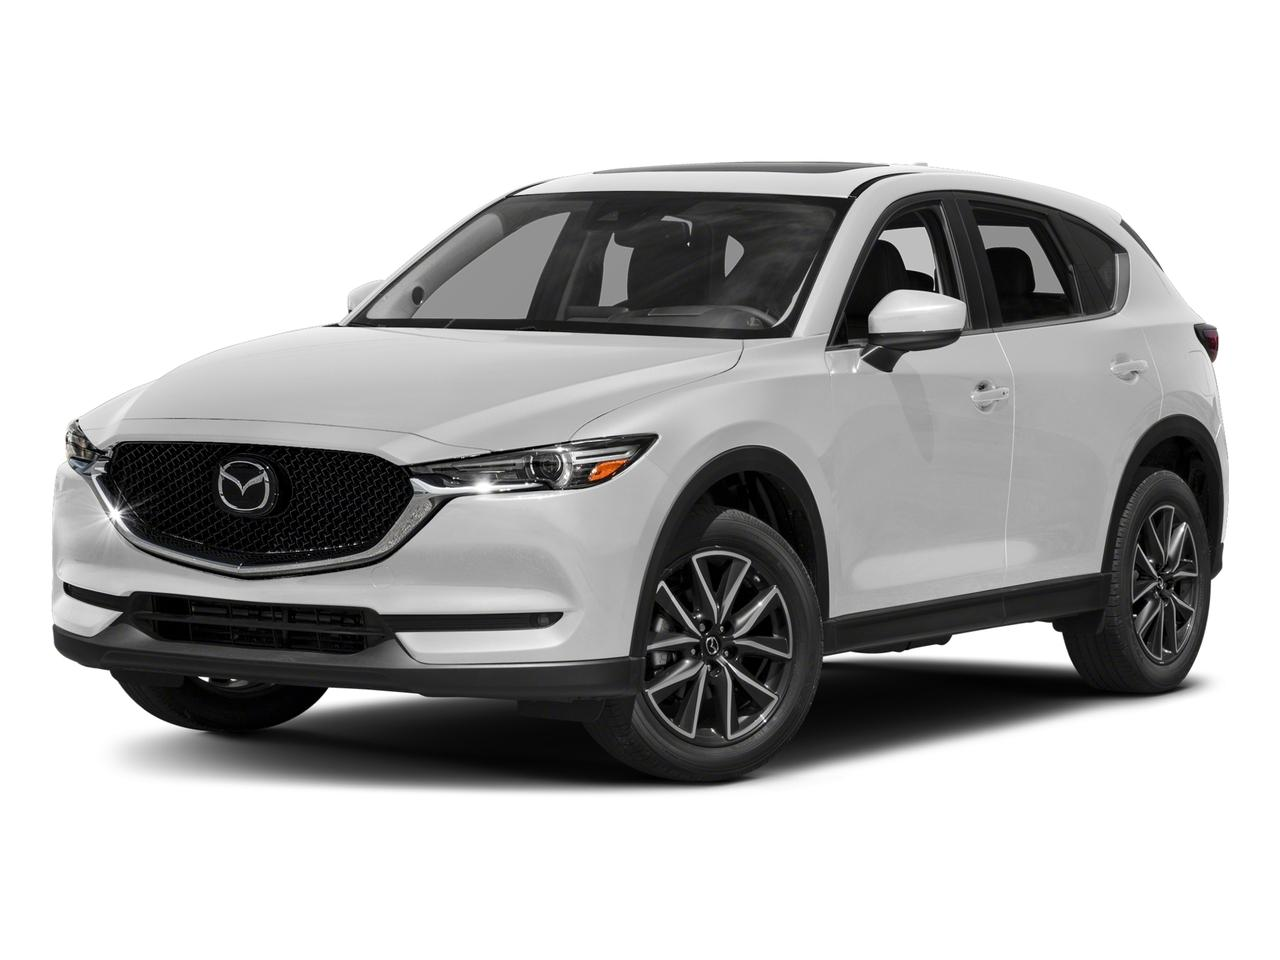 2017 Mazda CX-5 Vehicle Photo in State College, PA 16801